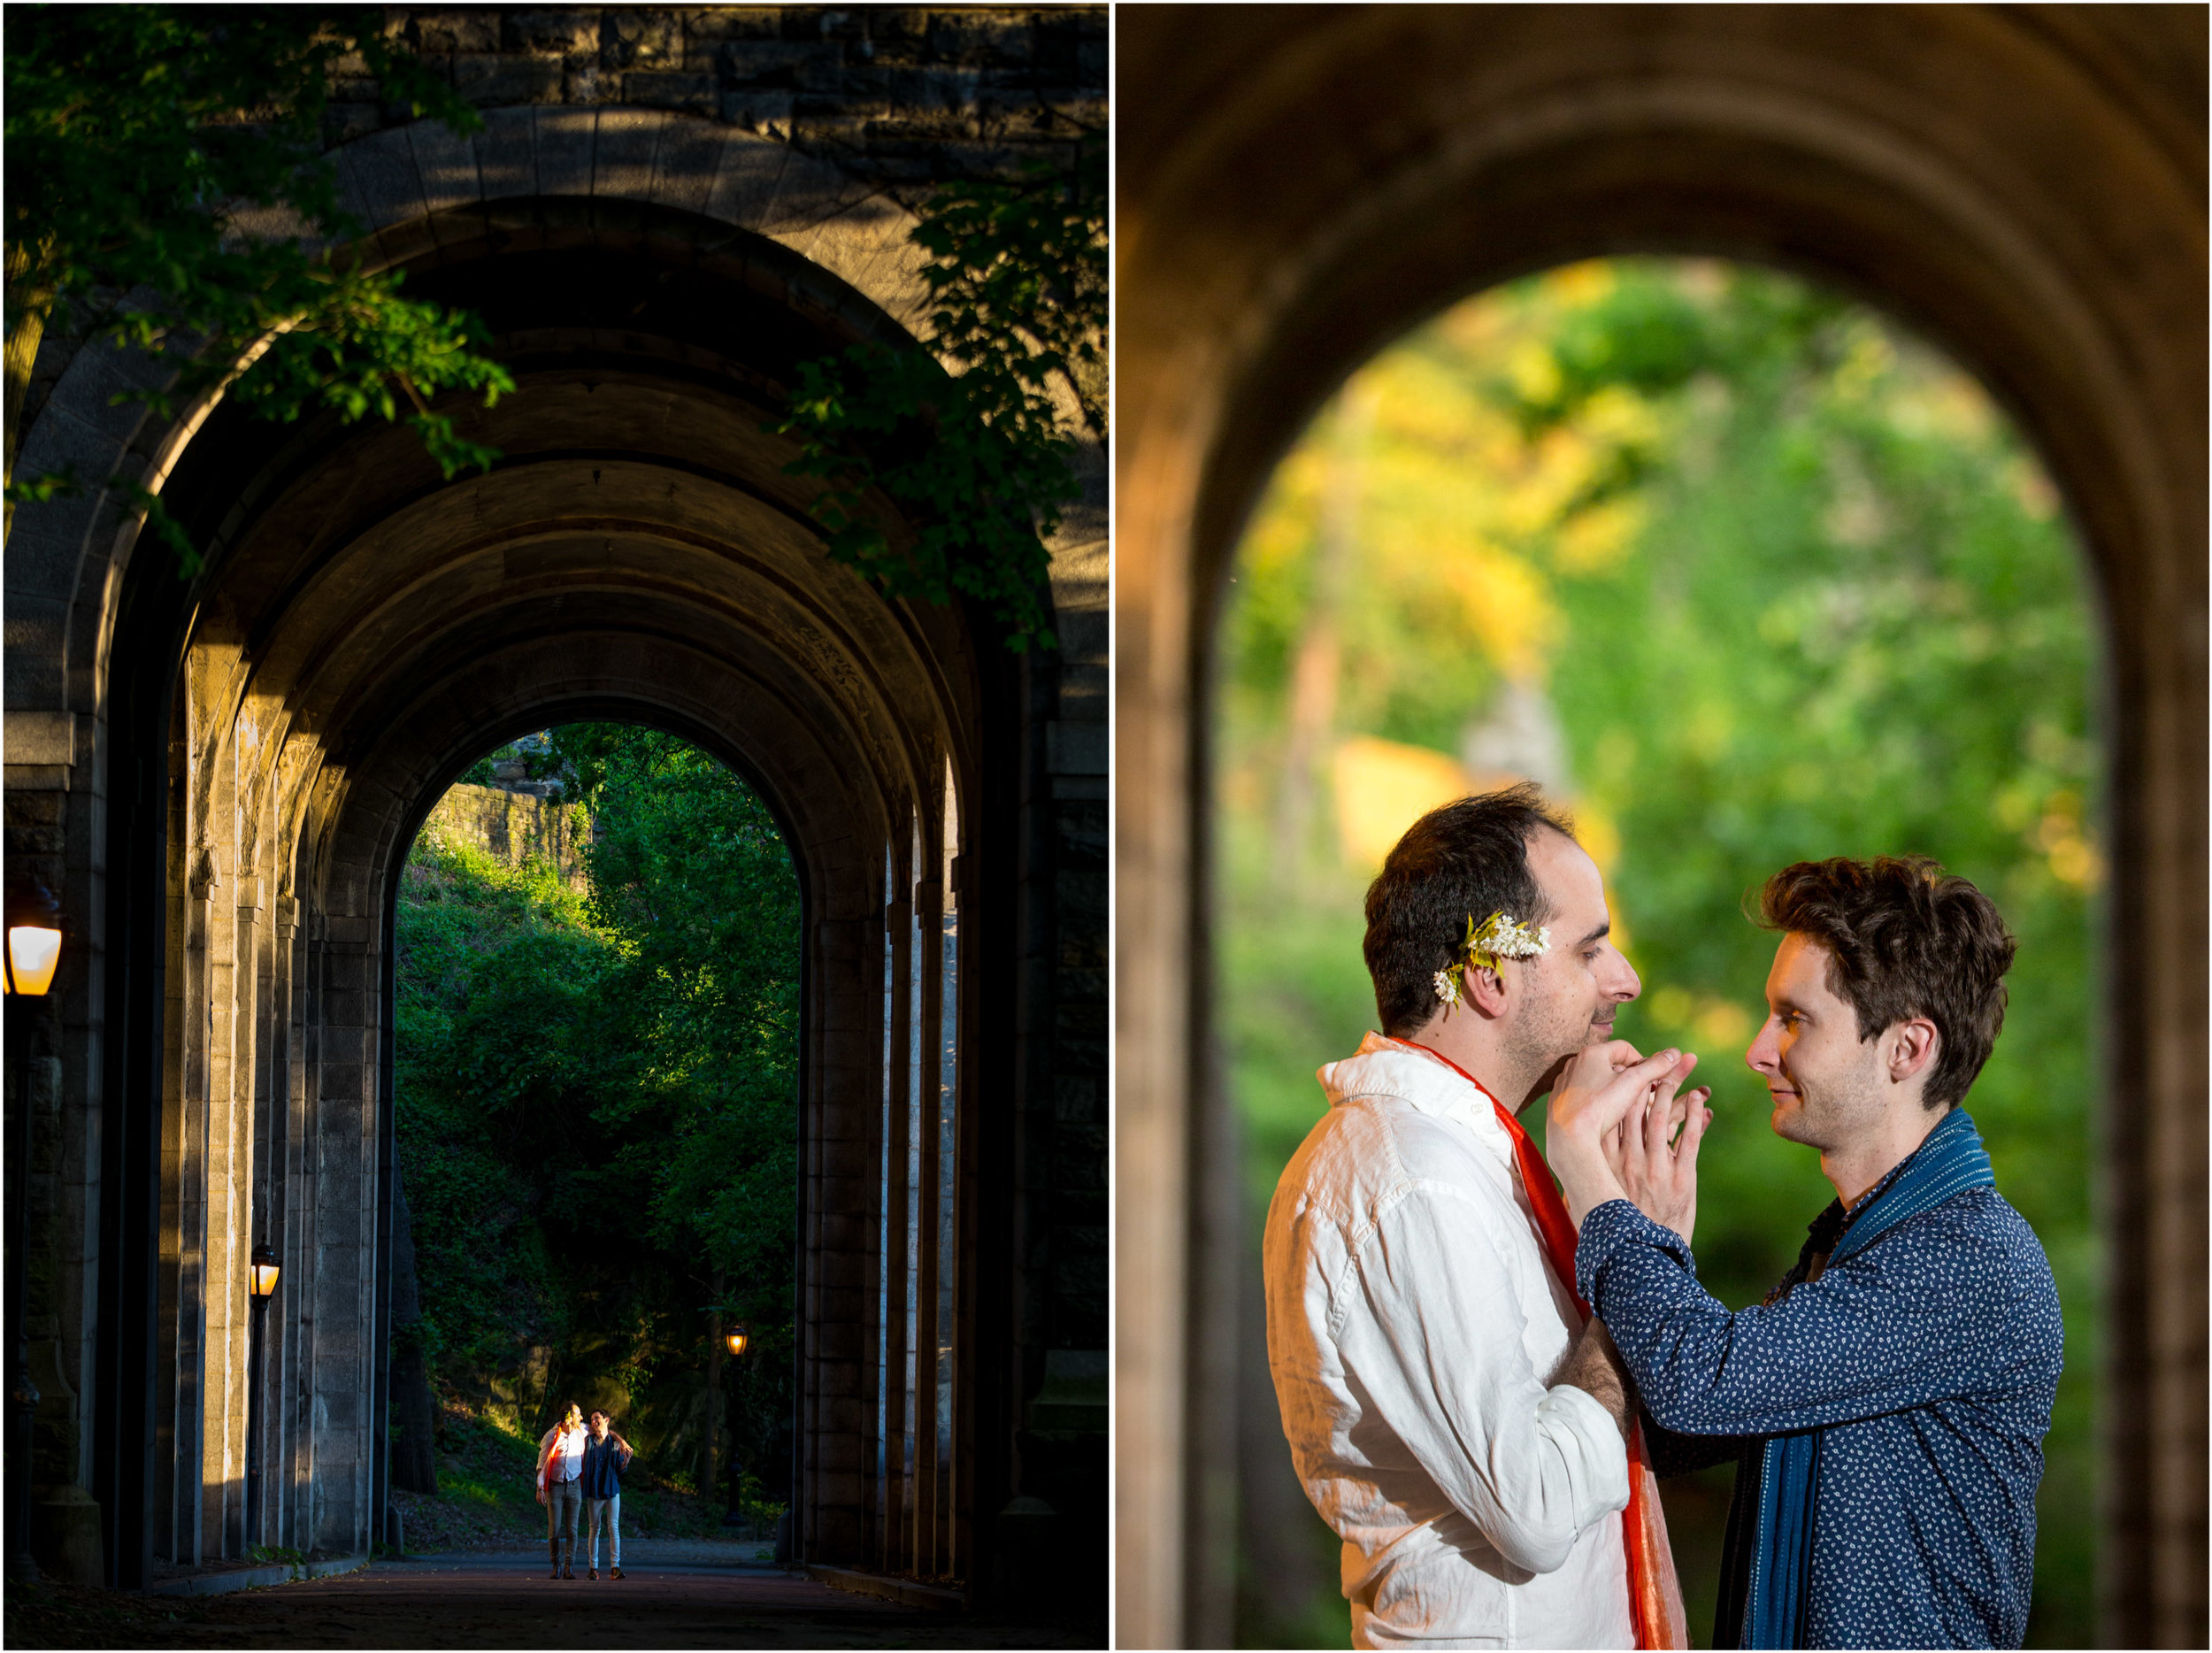 NYC Wedding Photographer Fort Tryon Park Engagement Photo Shoot Session Gay Same Sex Marriage New York